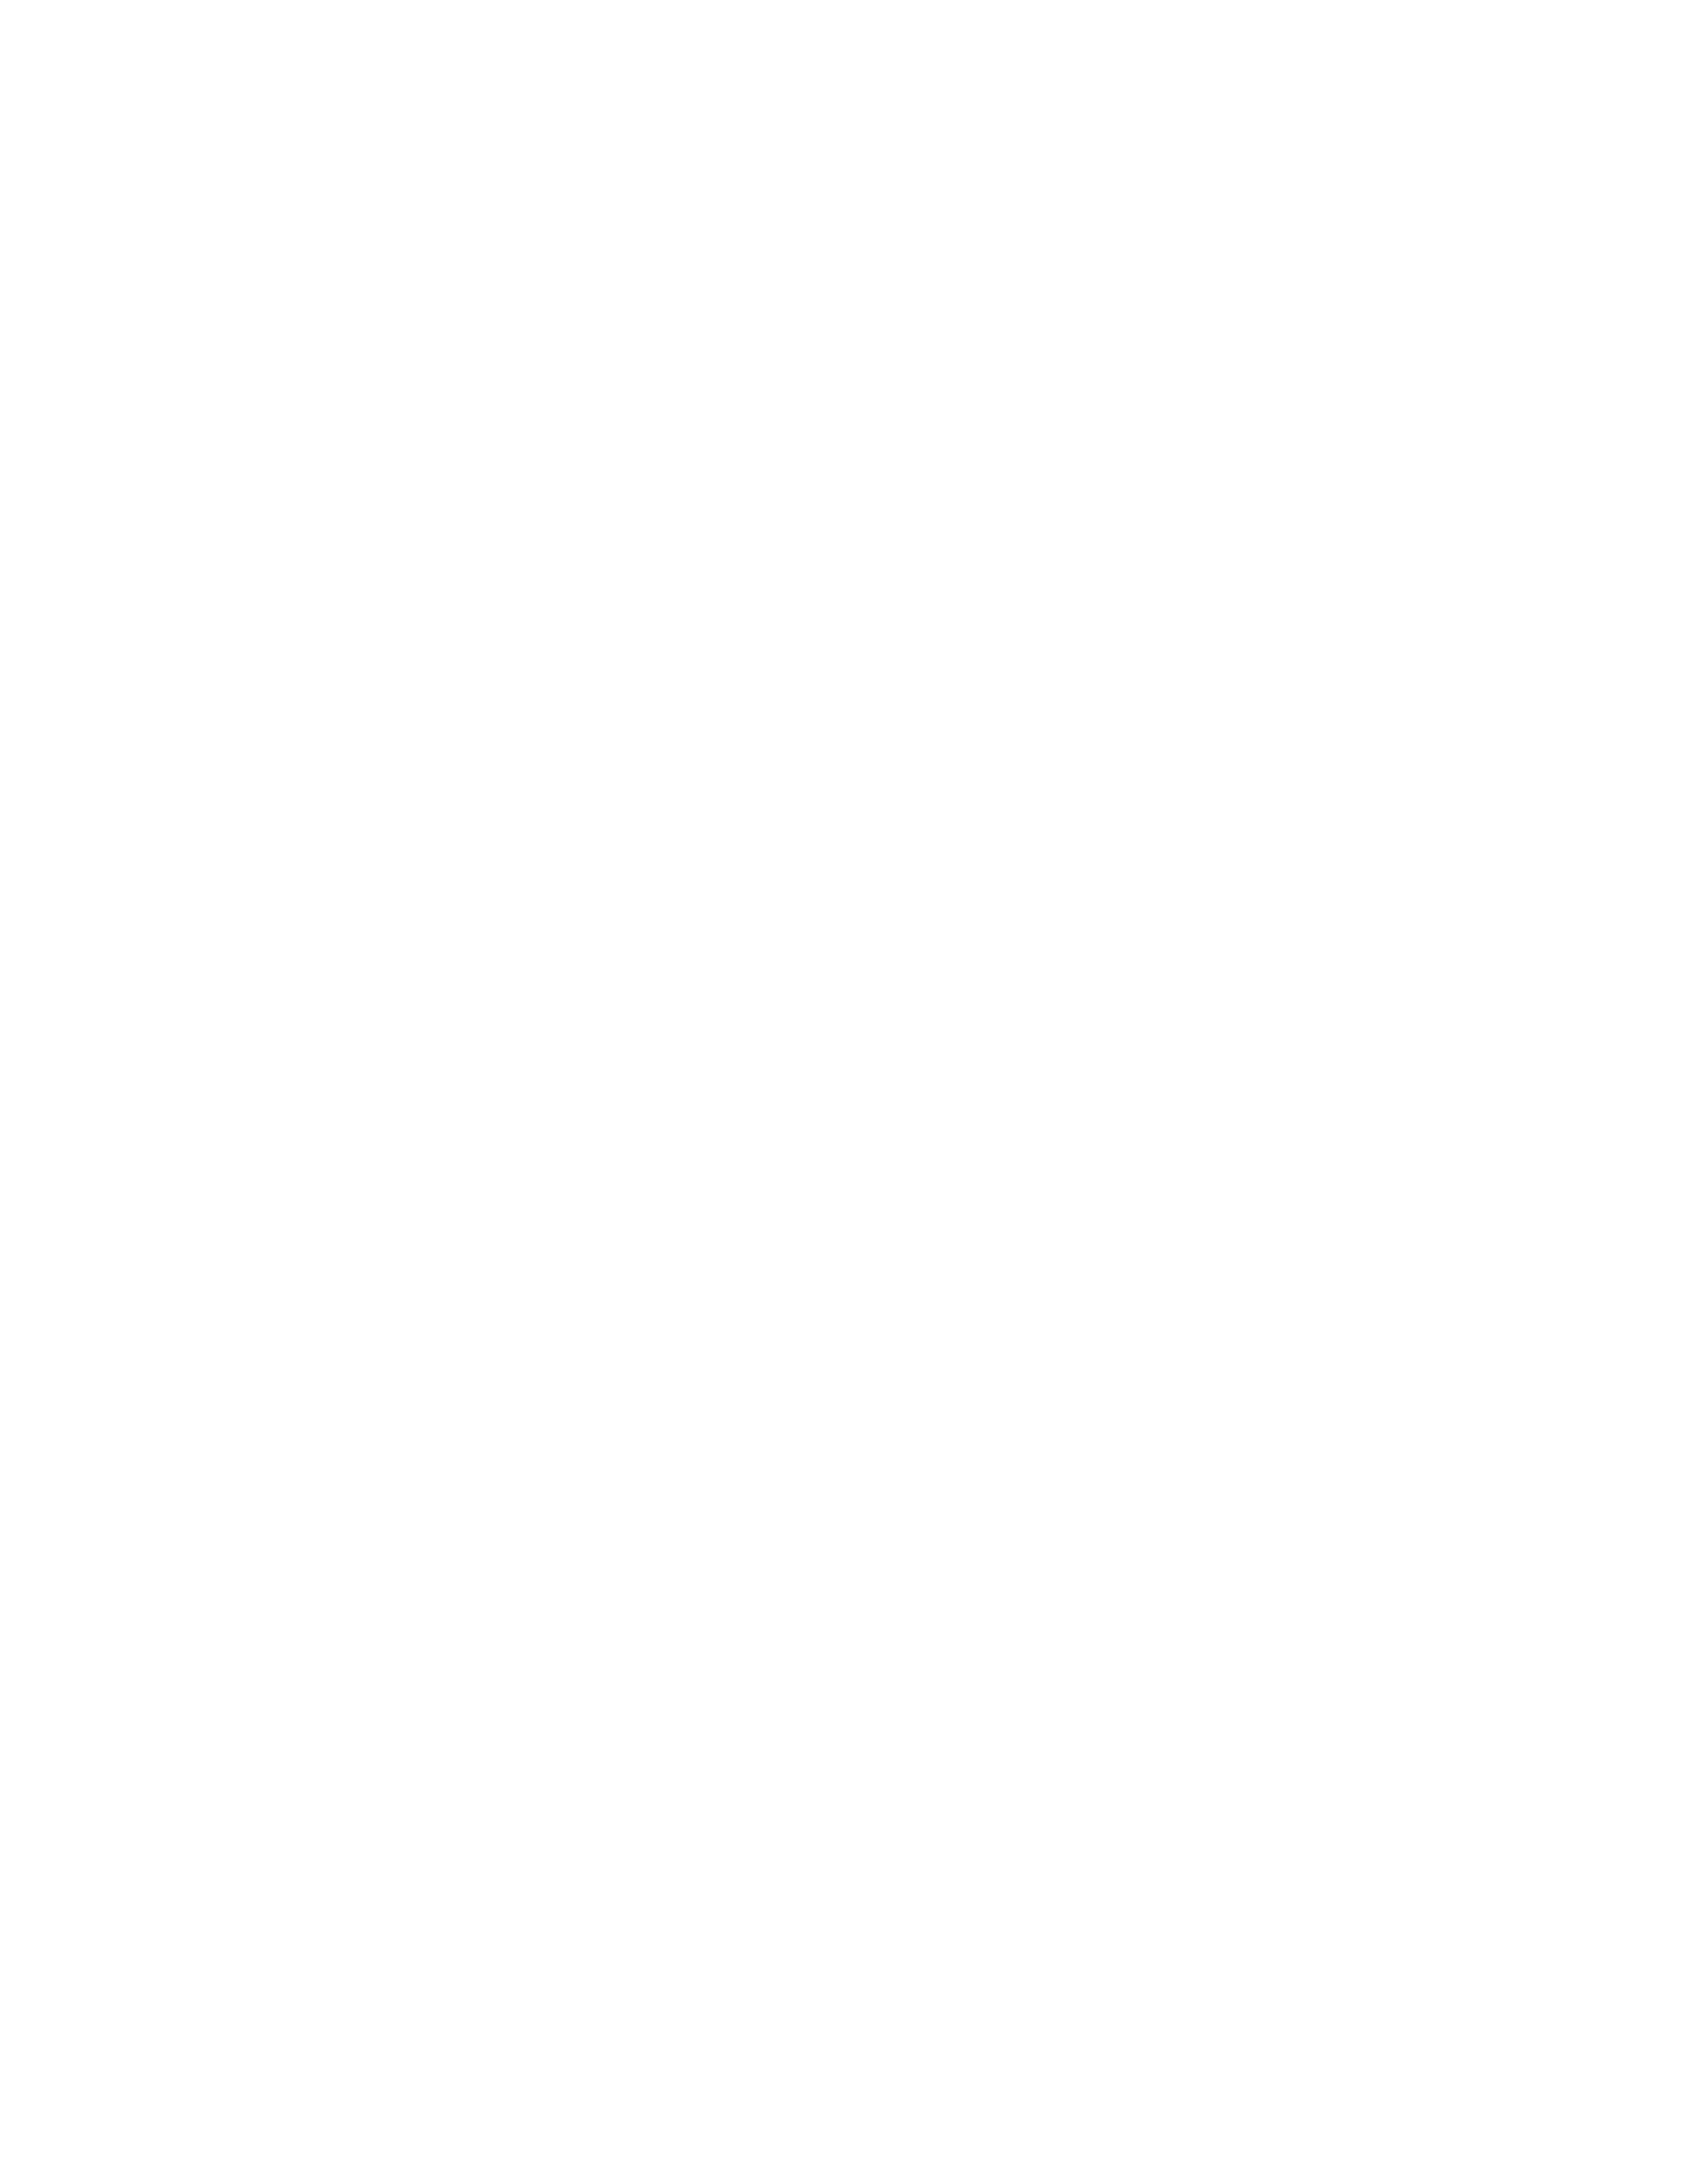 Mid-Western Regional Council Library